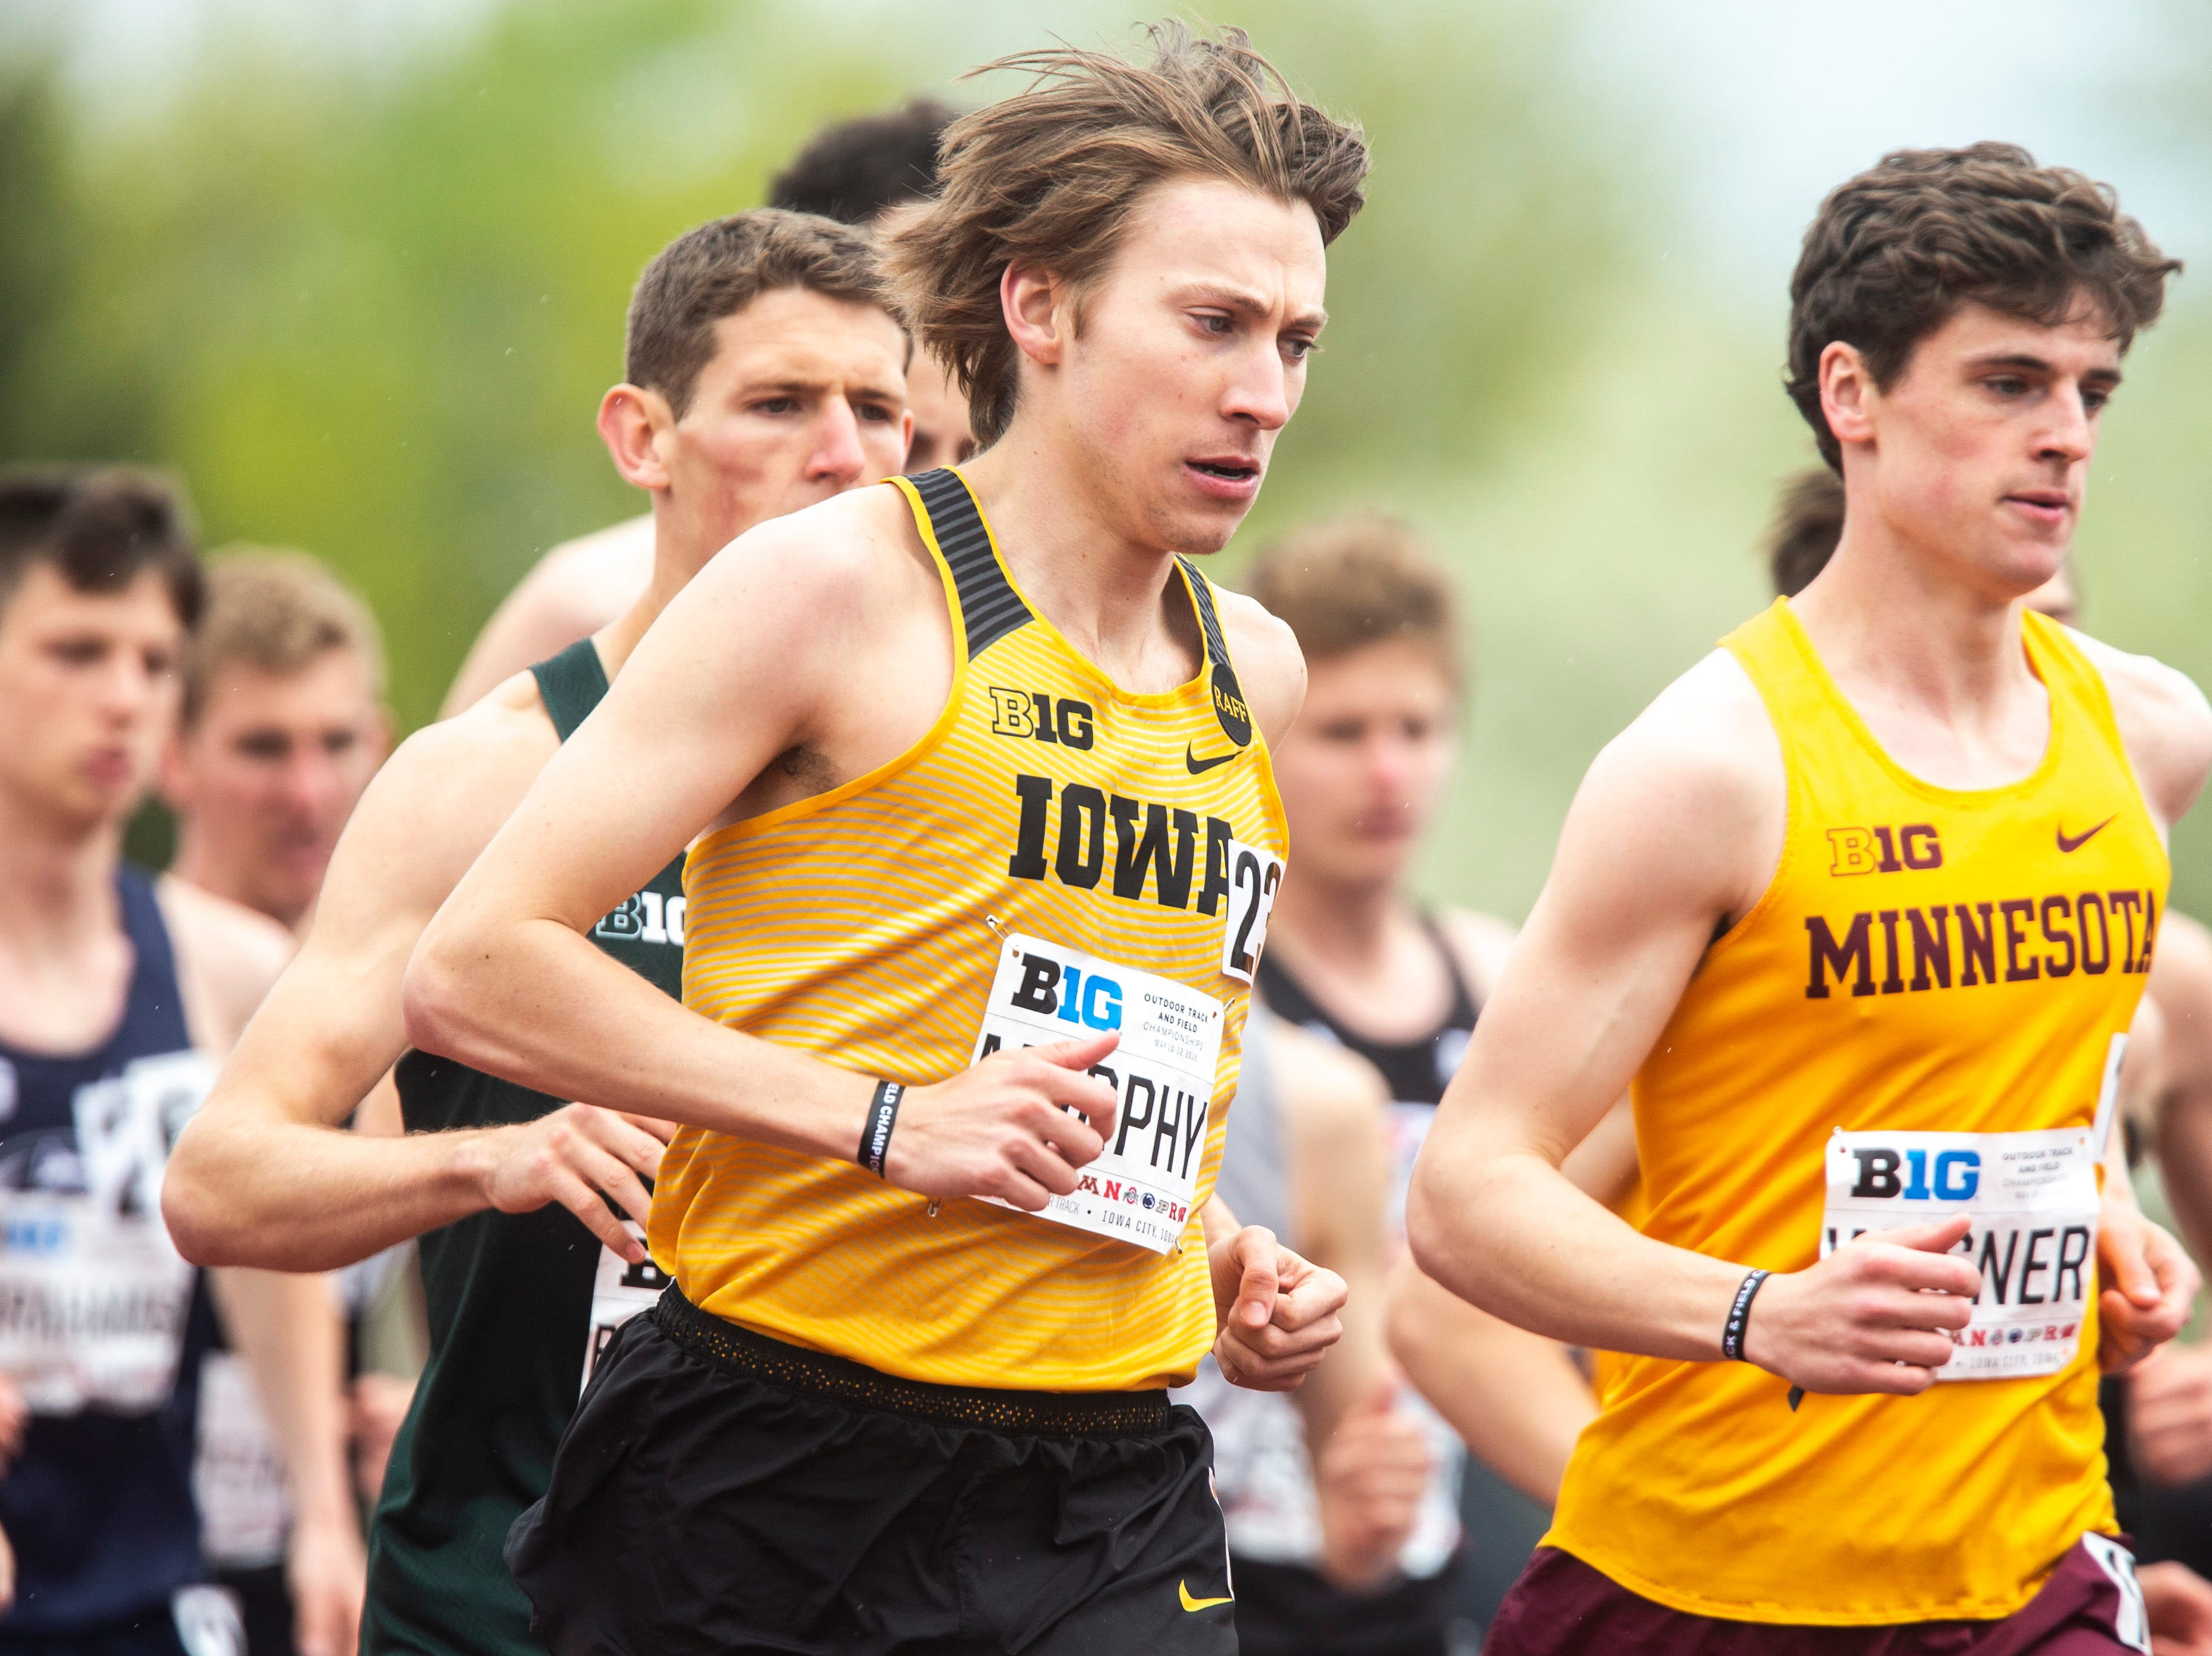 Iowa junior Daniel Murphy competes in the 5,000 meter finals during the final day of Big Ten track and field outdoor championships, Sunday, May 12, 2019, at Francis X. Cretzmeyer Track on the University of Iowa campus in Iowa City, Iowa.